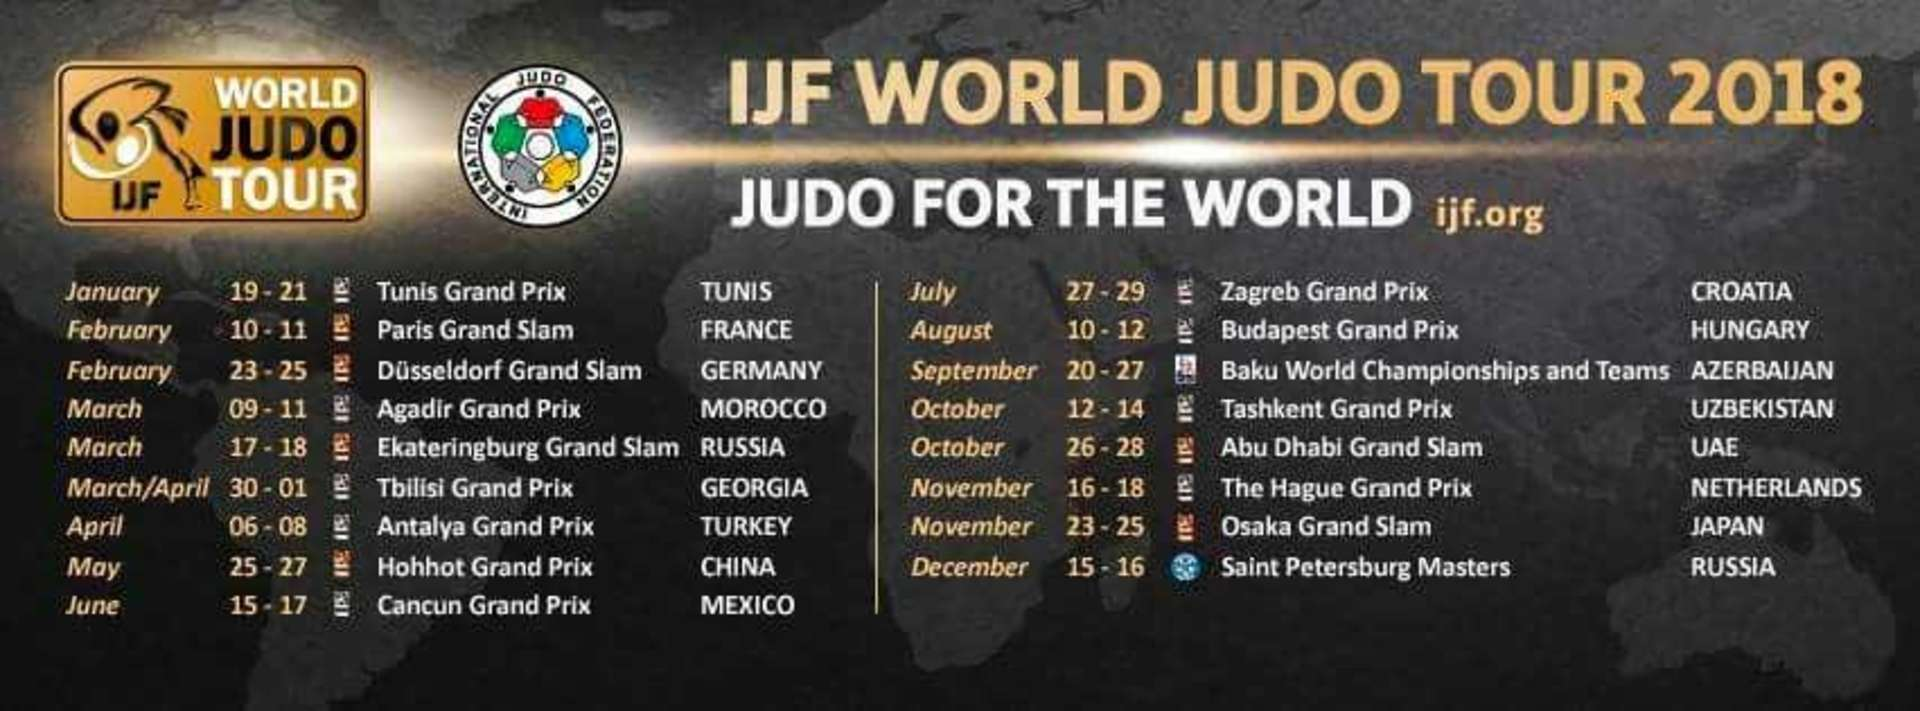 2018: A PULSATING YEAR / IJF org